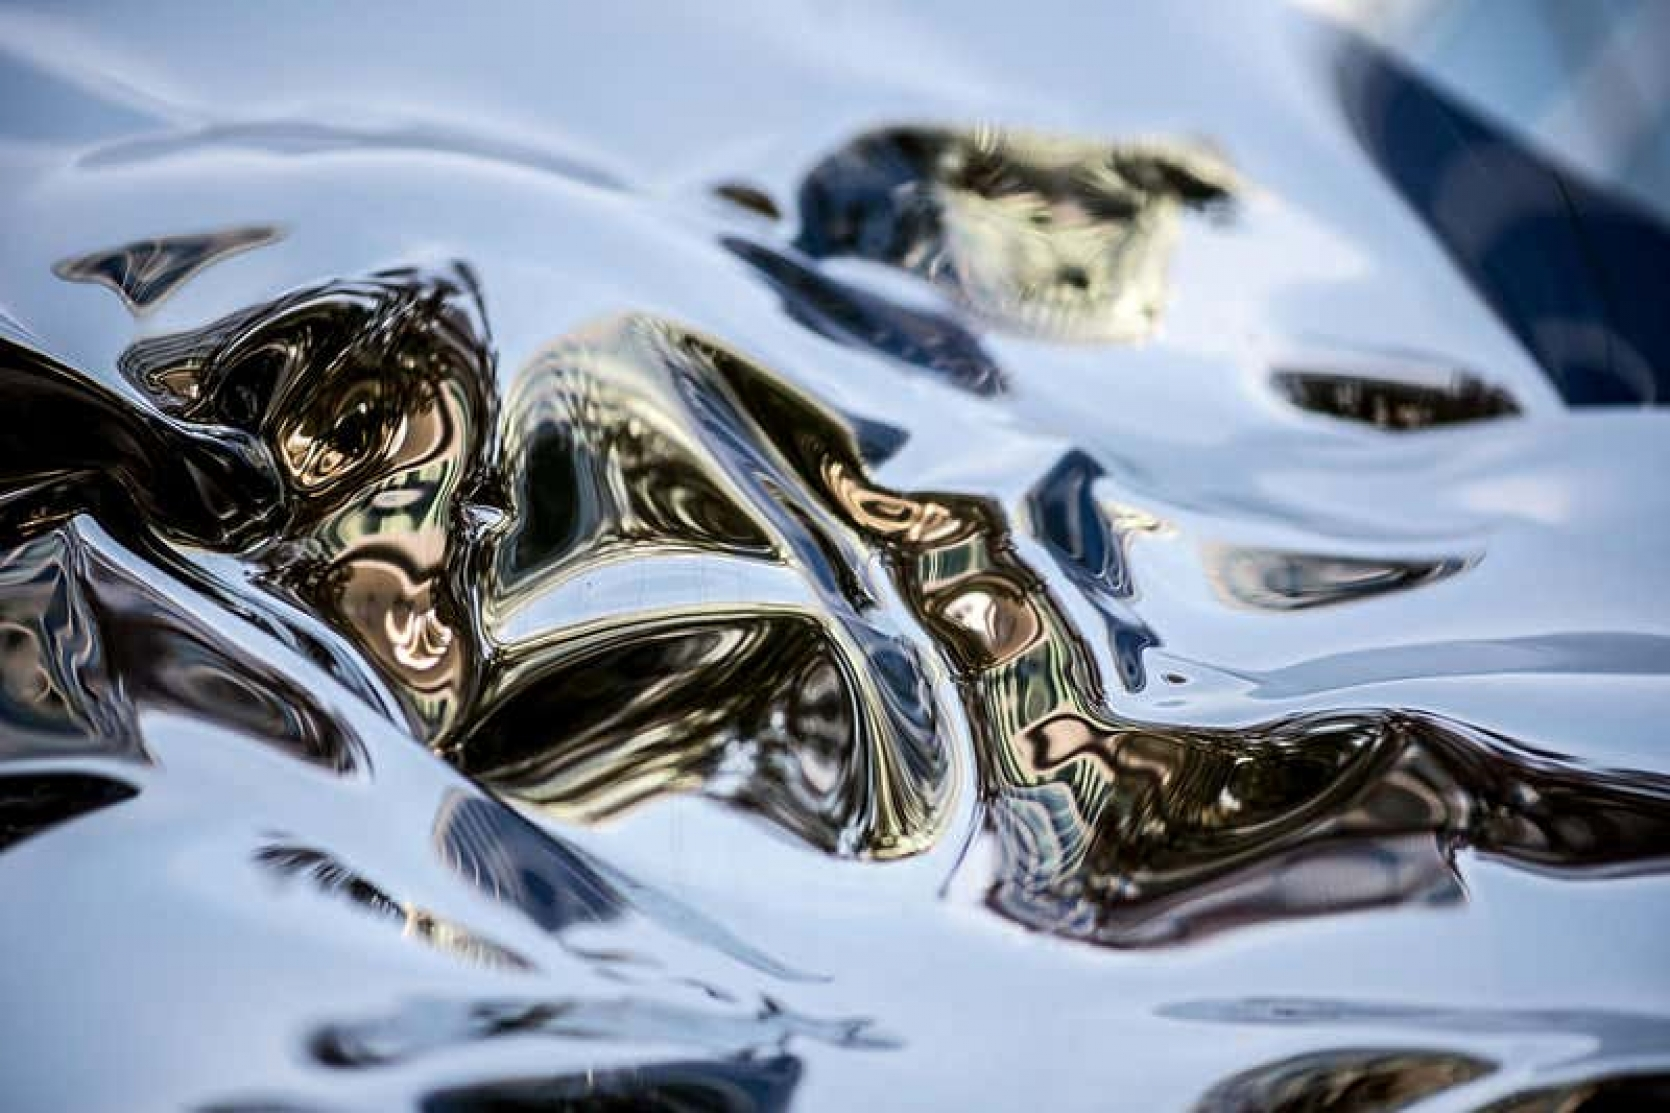 SCIENTISTS WANT TO BUILD ROBOTS OUT OF FLOATING LIQUID METAL